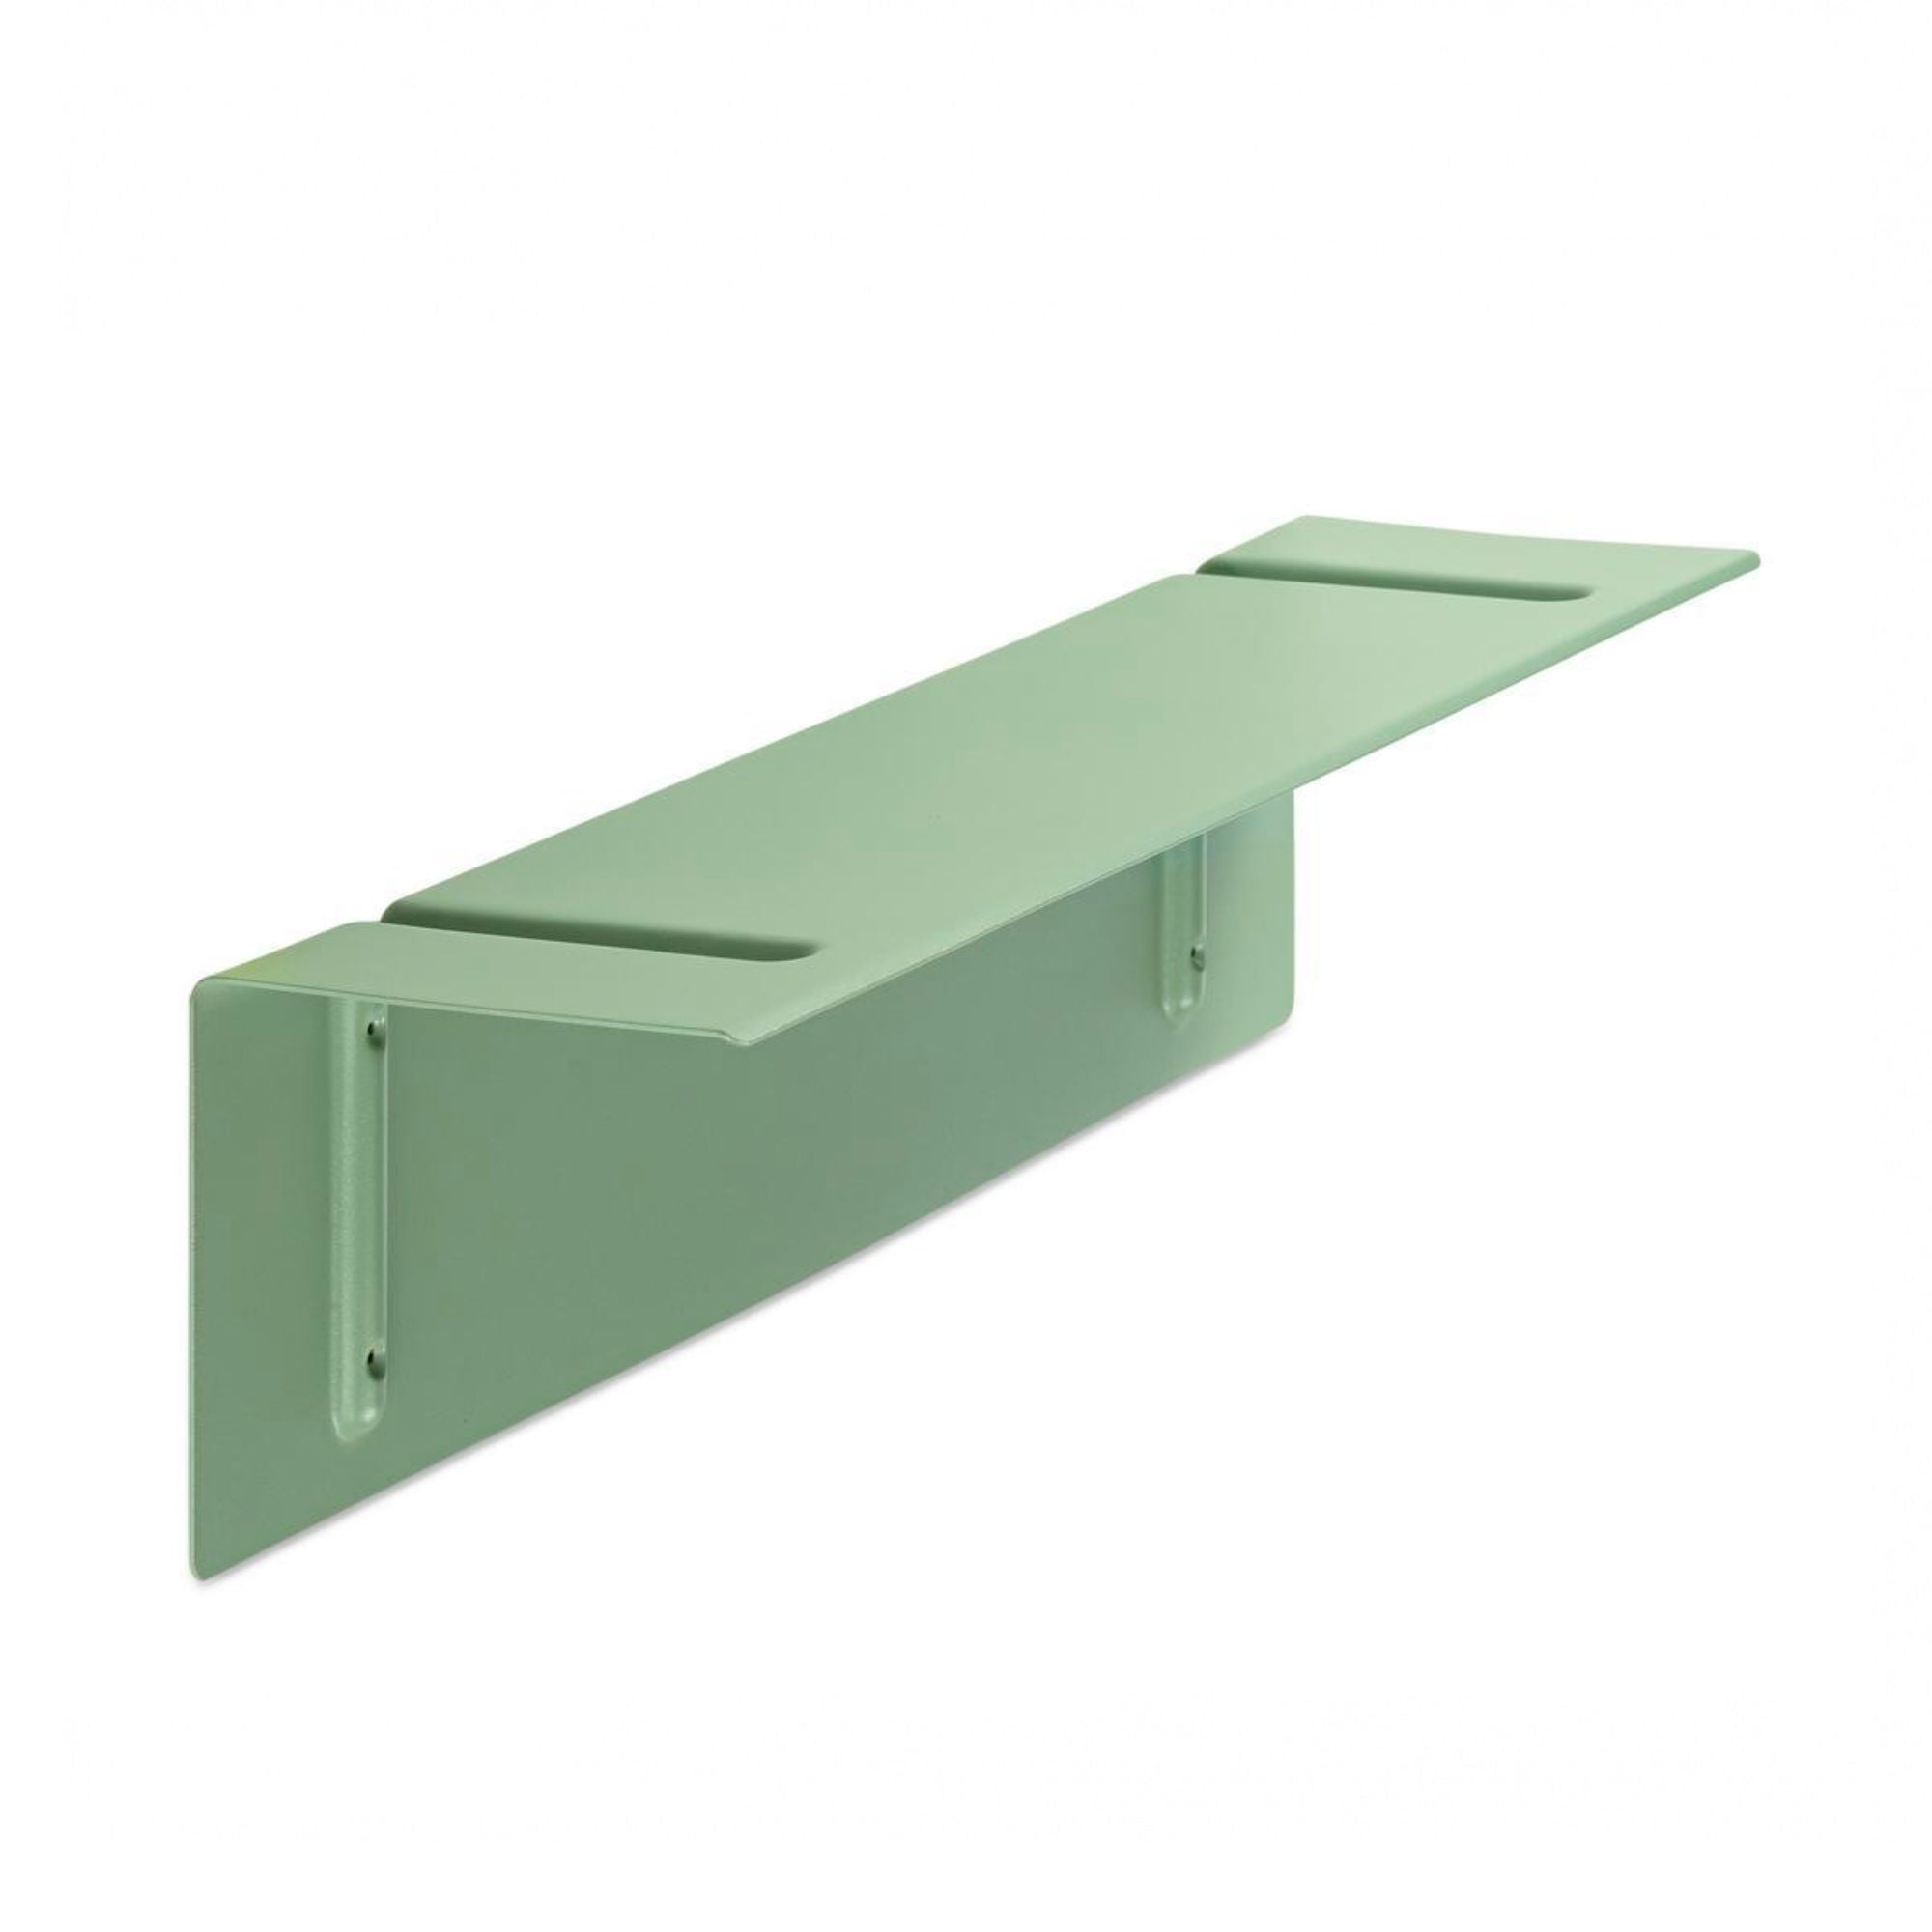 Hay Brackets Incl. Wall Shelf L80 , Dusty Green